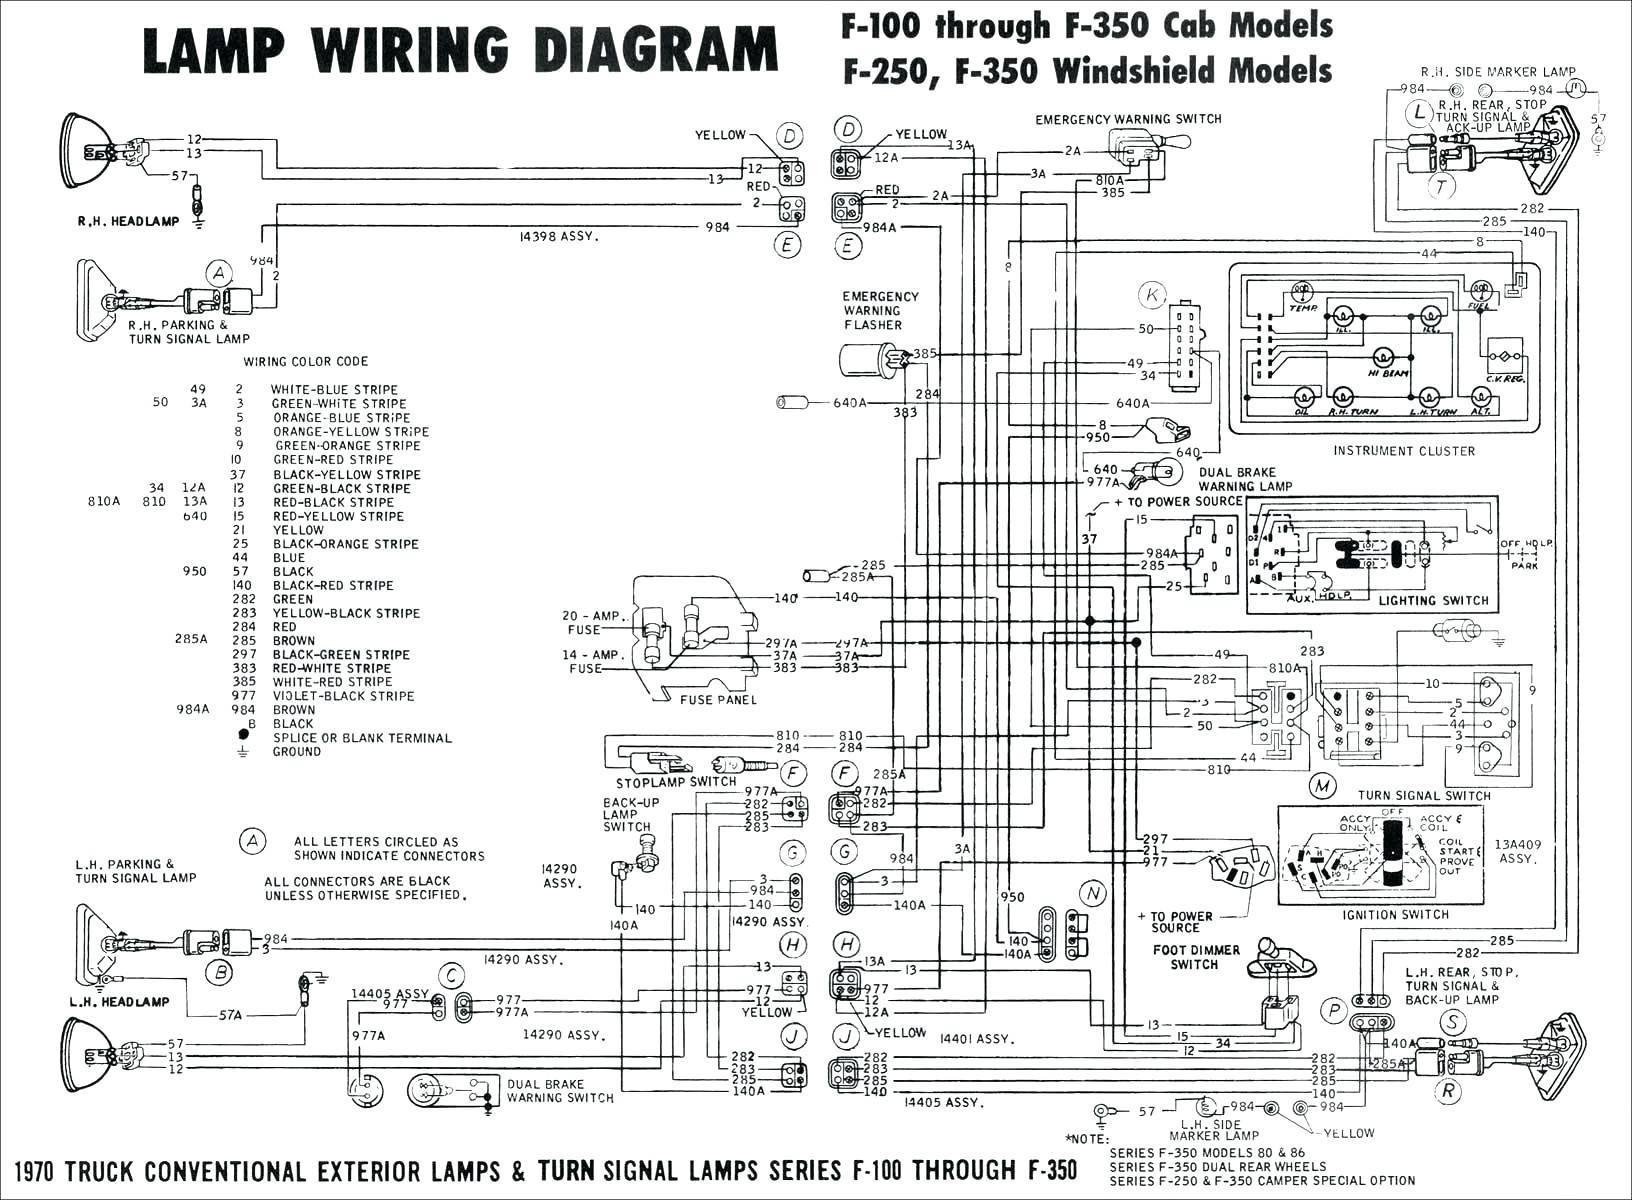 1988 Chevy Truck Tail Light Wiring Diagram 1990 Chevy